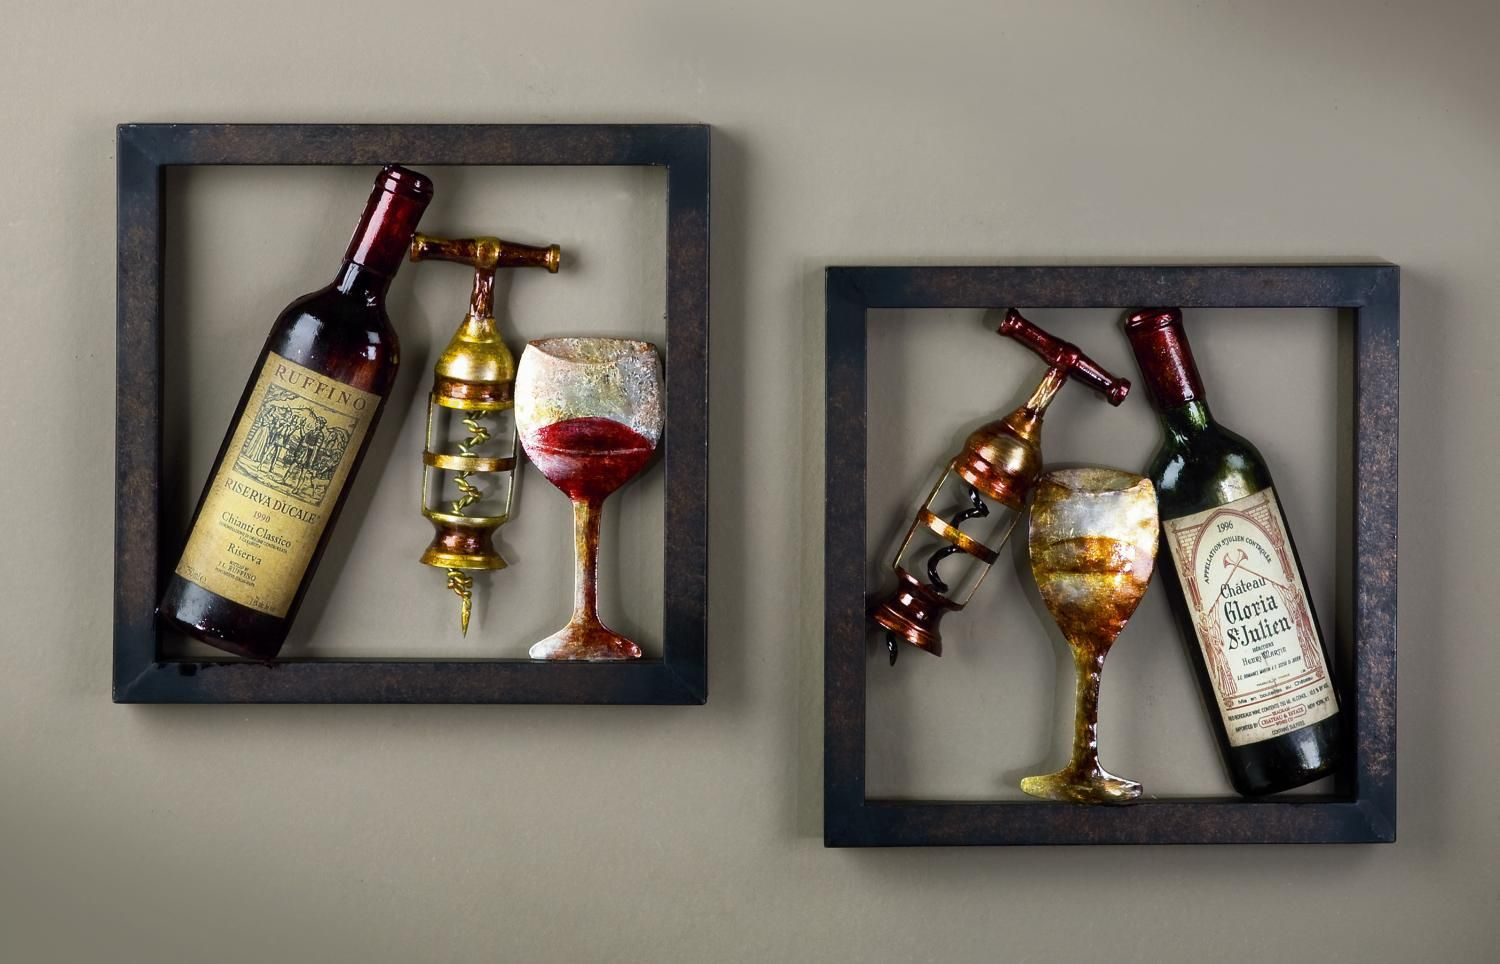 Pin By Julie Cardiero On Home And Garden Wine Wall Art Wine Decor Kitchen Wine Wall Decor